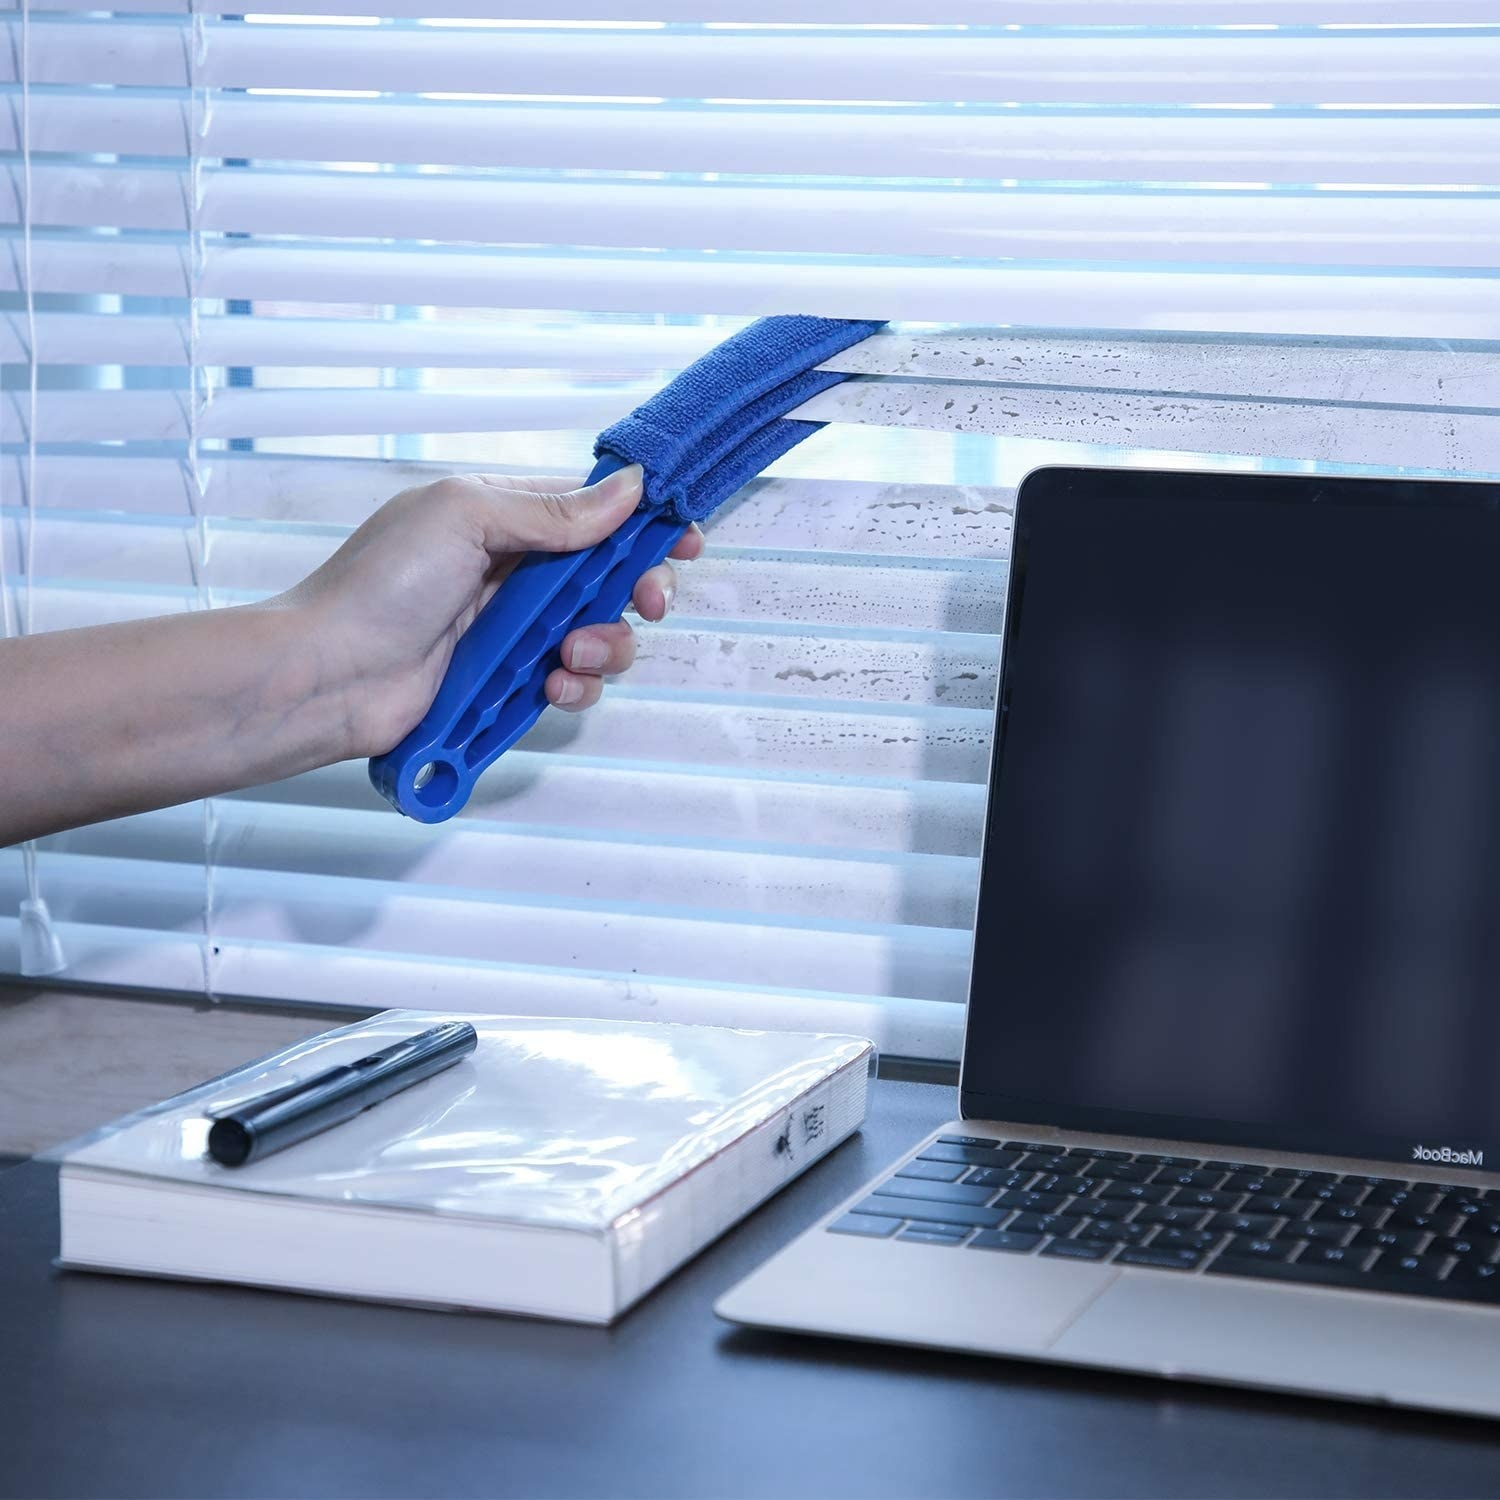 Model's hand using blue plastic and cloth duster brush on blinds